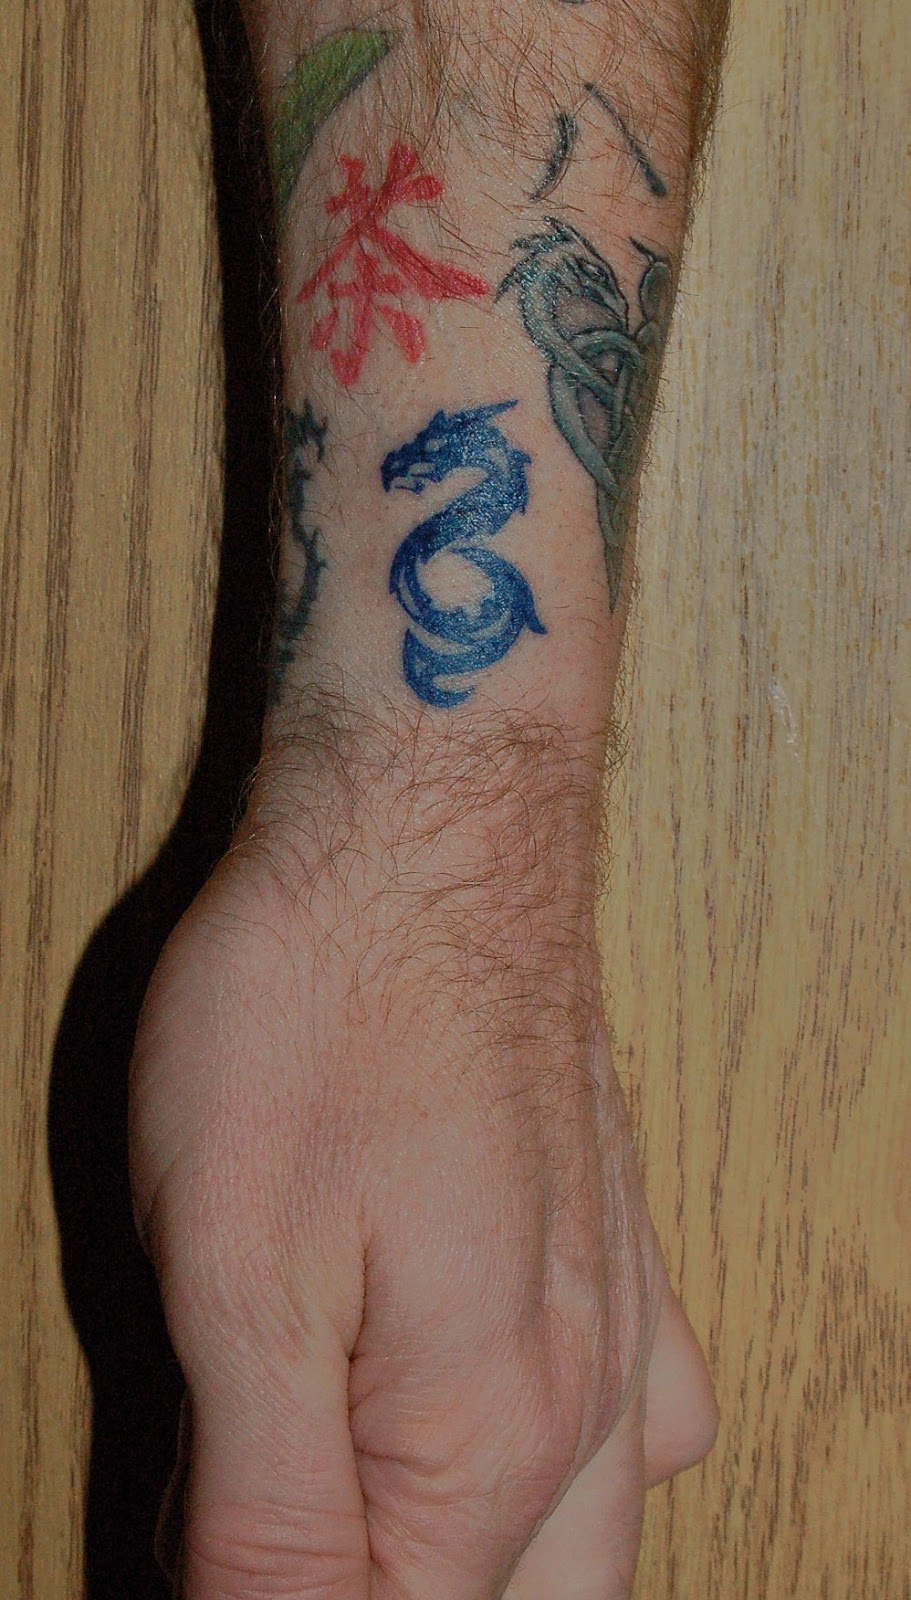 I Love You Symbol In Sign Language Tattoo 36116 Usbdata